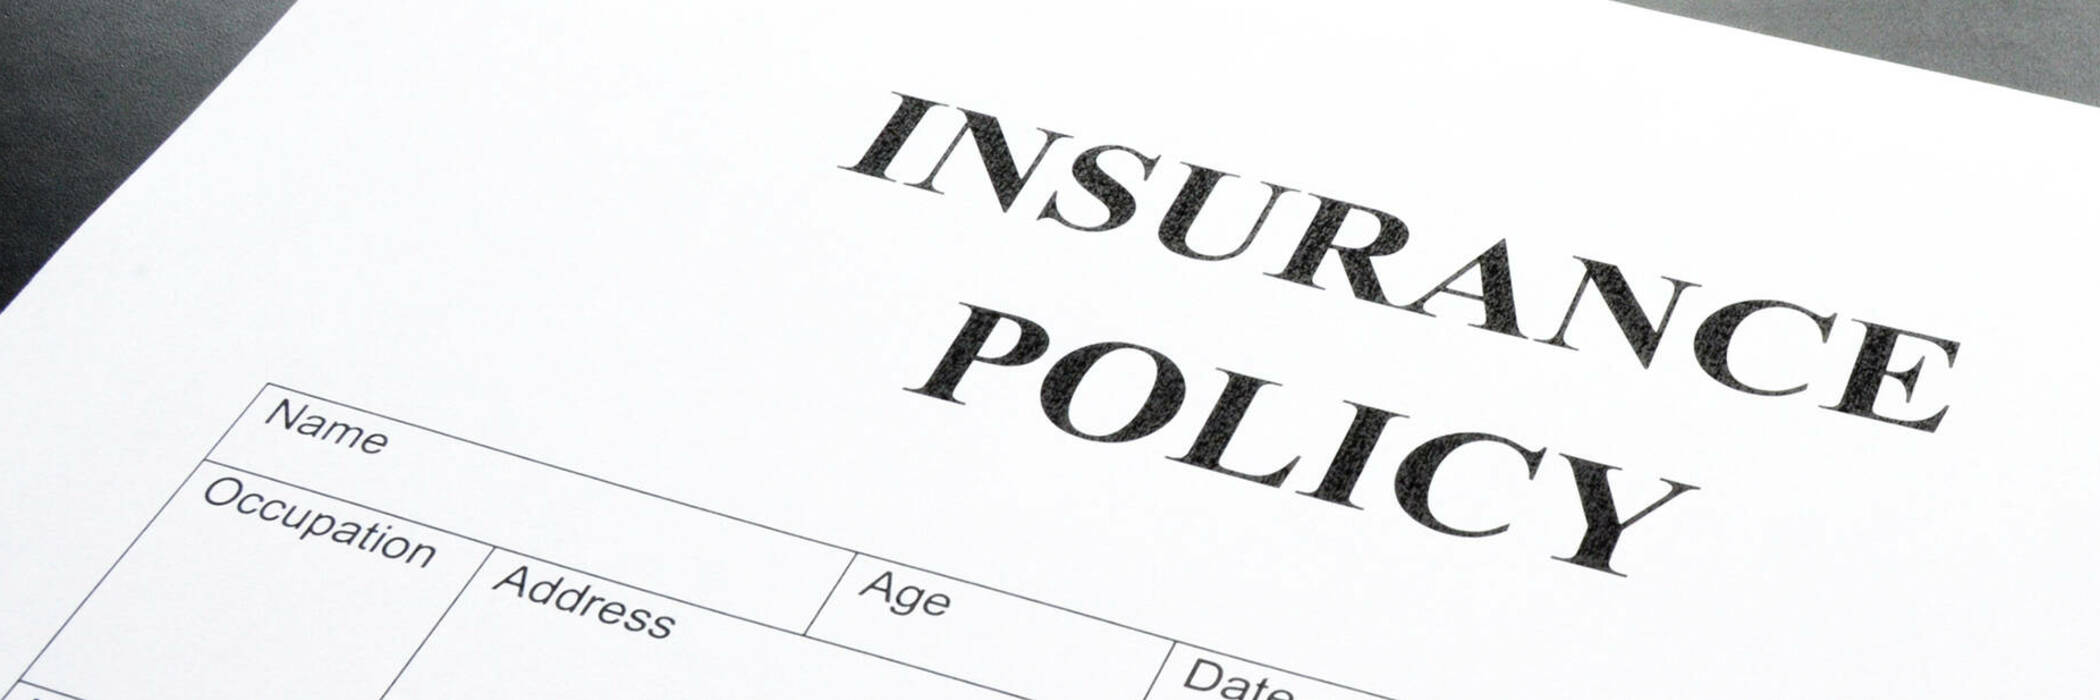 Insurance policy.